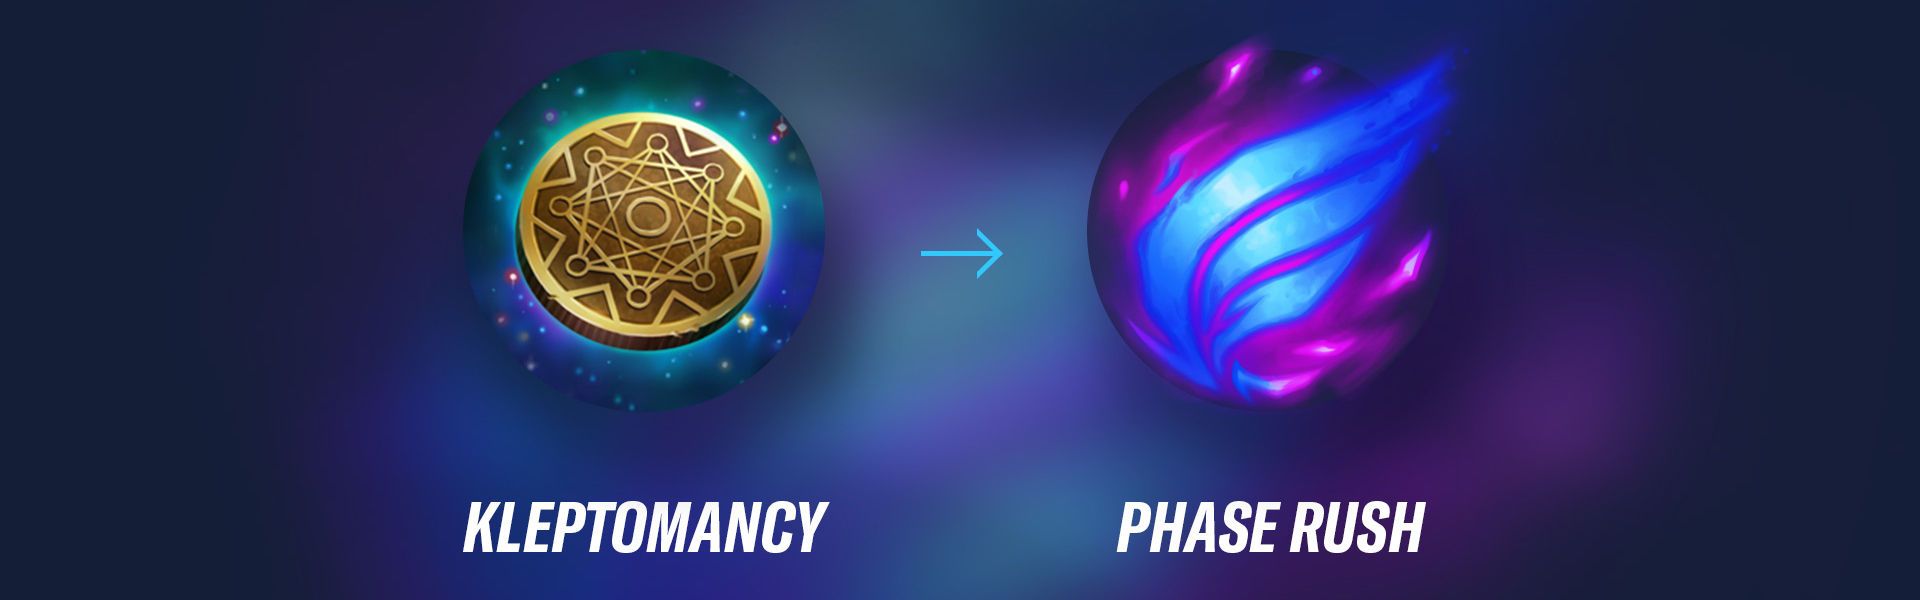 Wild Rift Patch 2.3: Rune System Changes Revealed